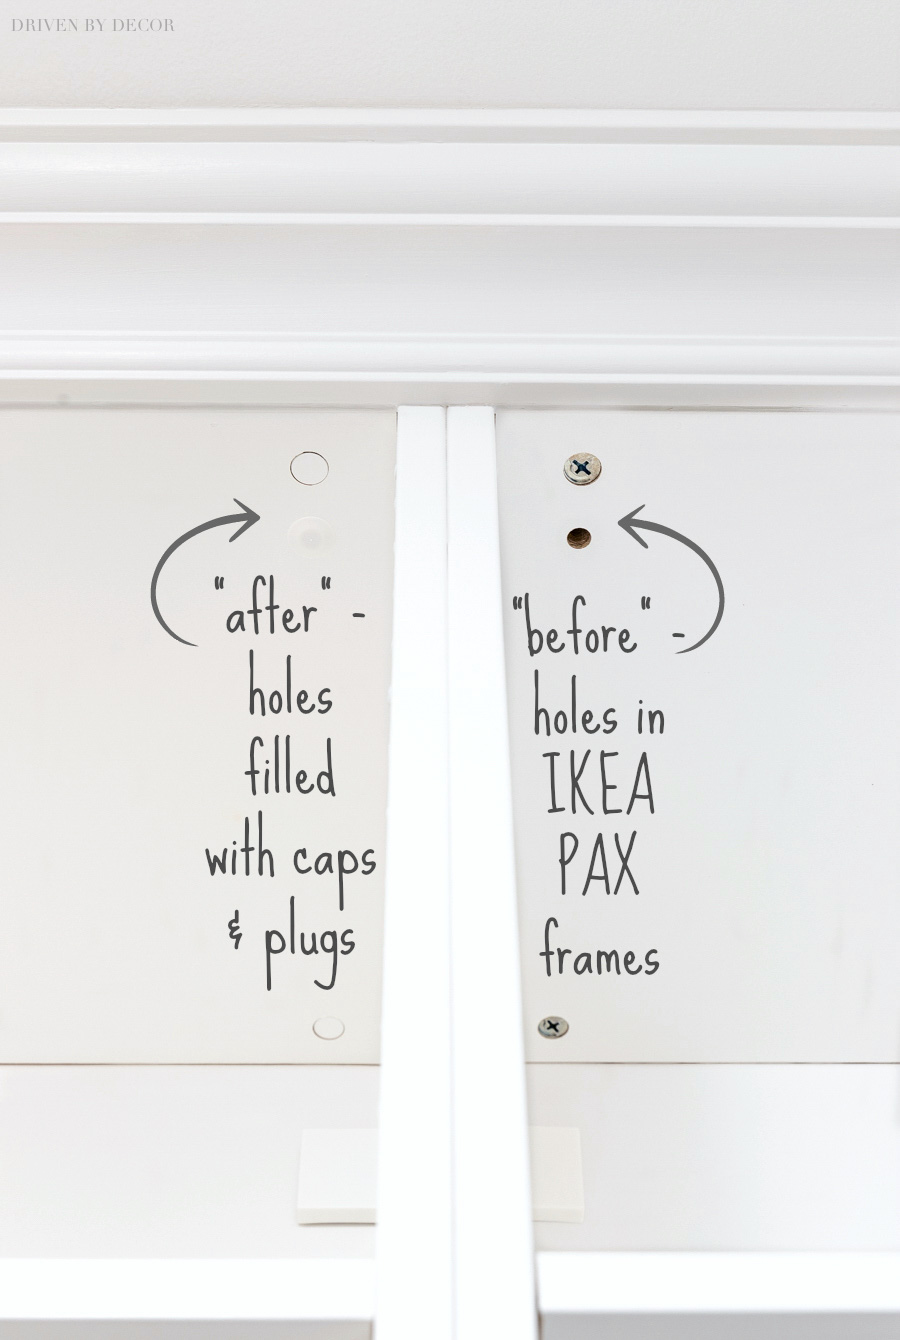 The exact plugs and covers to use to fill holes in IKEA PAX wardrobe frames!